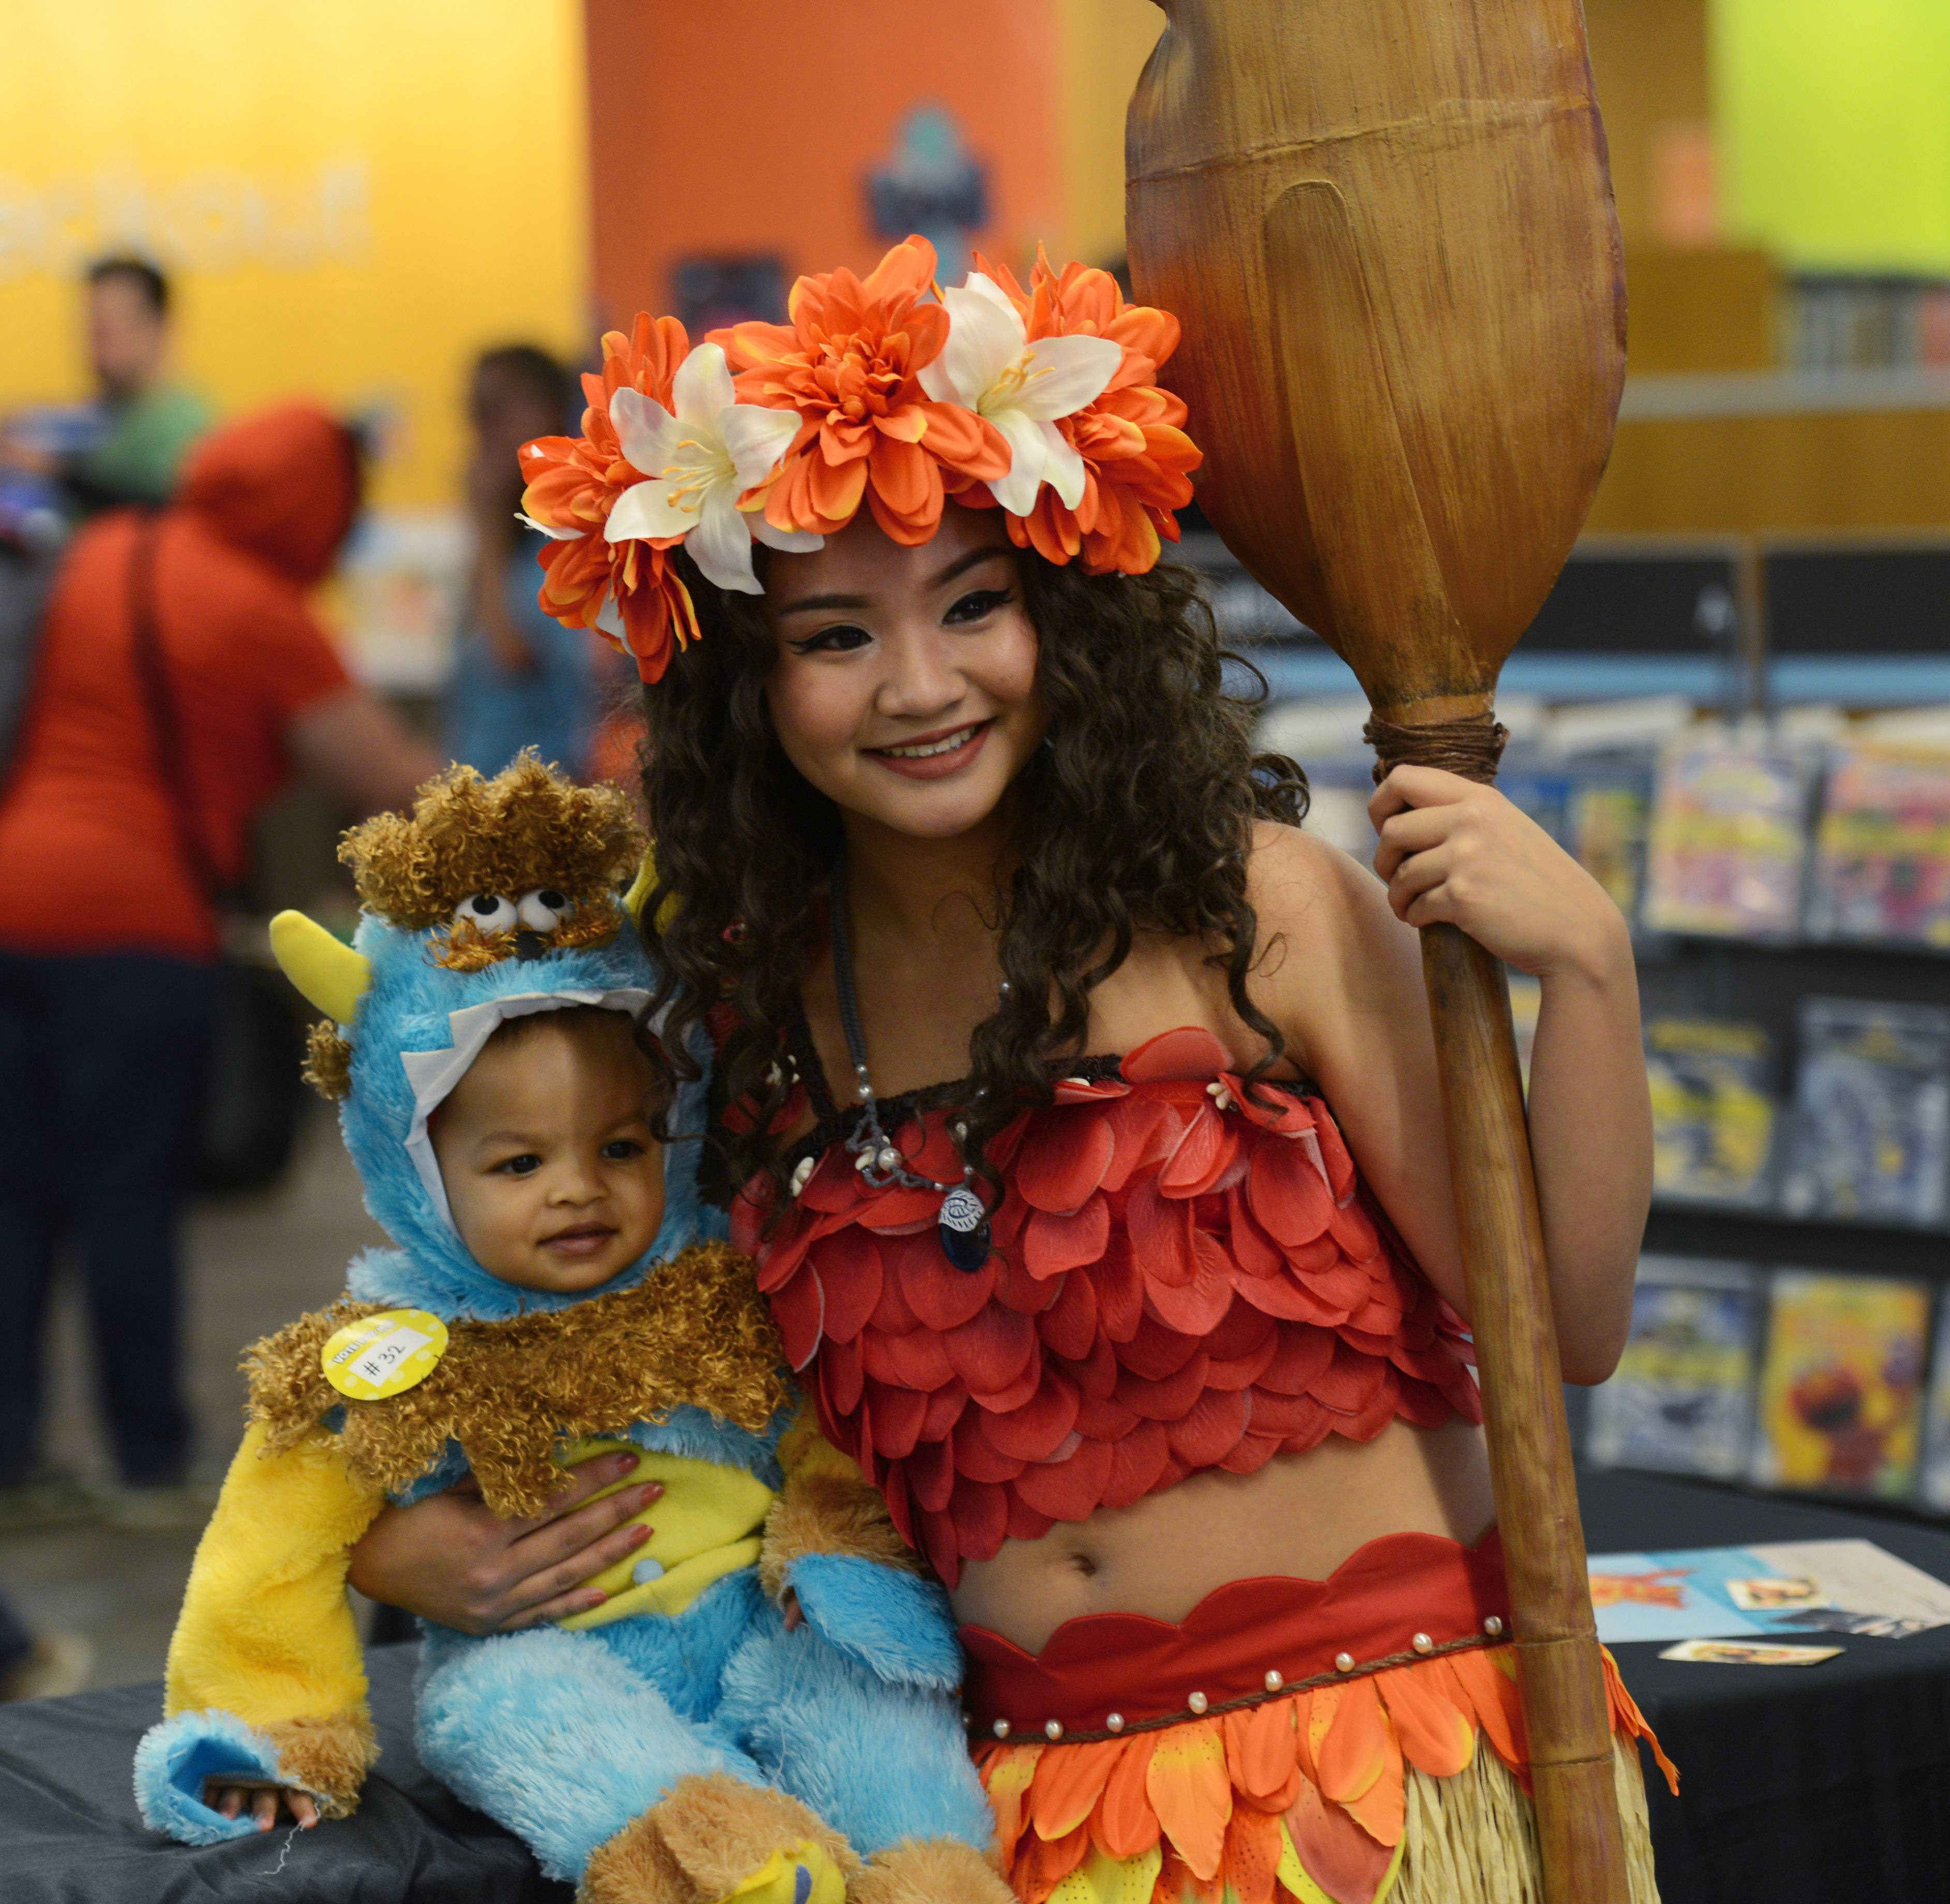 Tiny monster boy Abhinav Aukula, 1, visits with Samantha Sanchez, dressed as Disney's Moana, during the fourth annual Mini Comic Con at the Vernon Area Public Library in Lincolnshire Saturday.